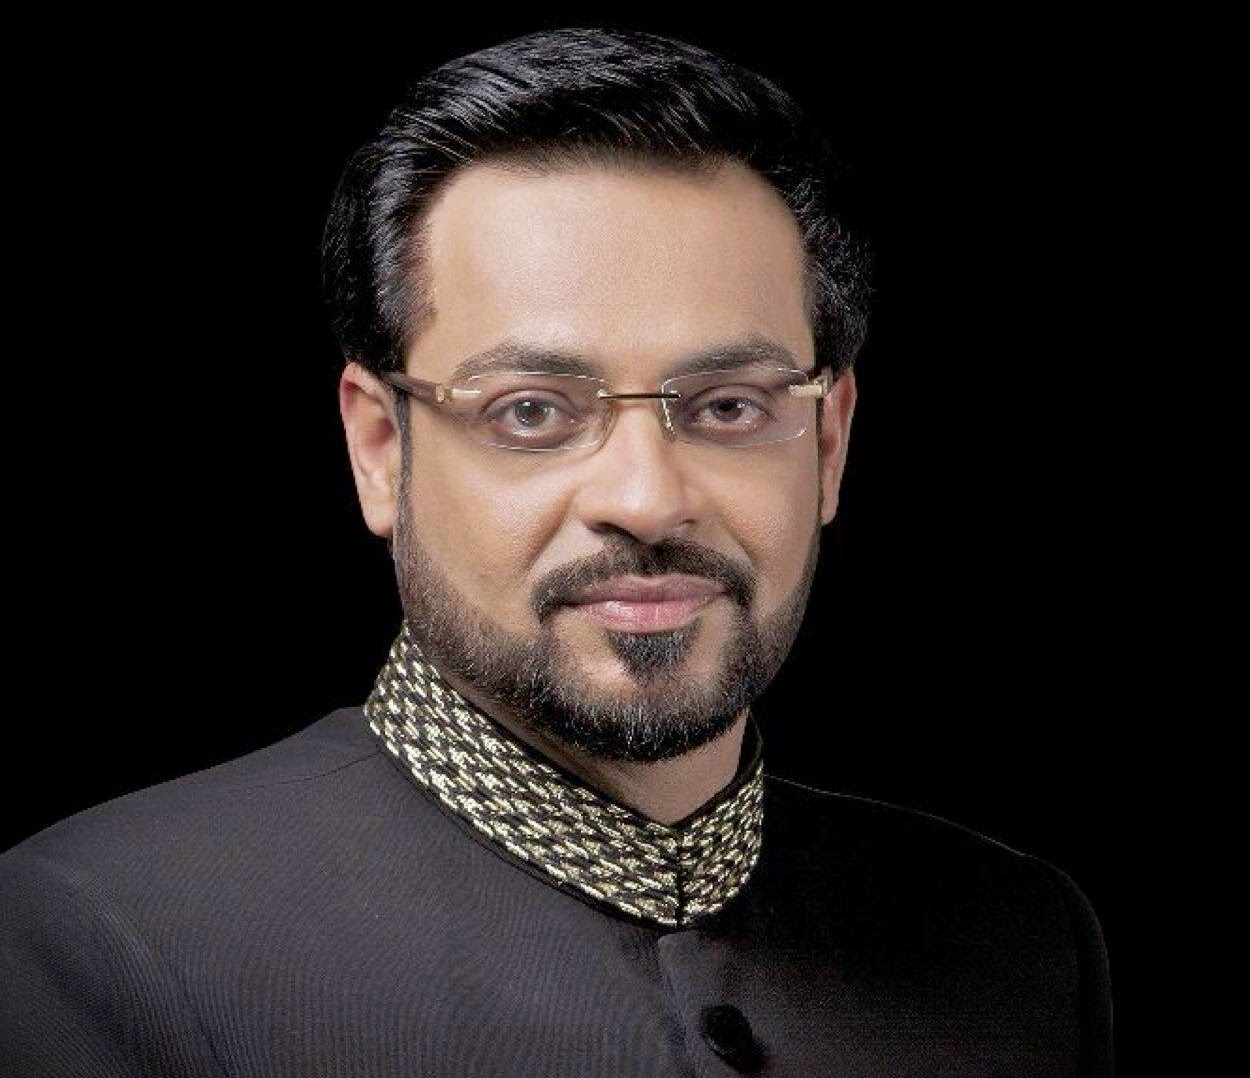 Naats Mp3 Download: Aamir Liaquat Hussain Naats Mp3 Free Download